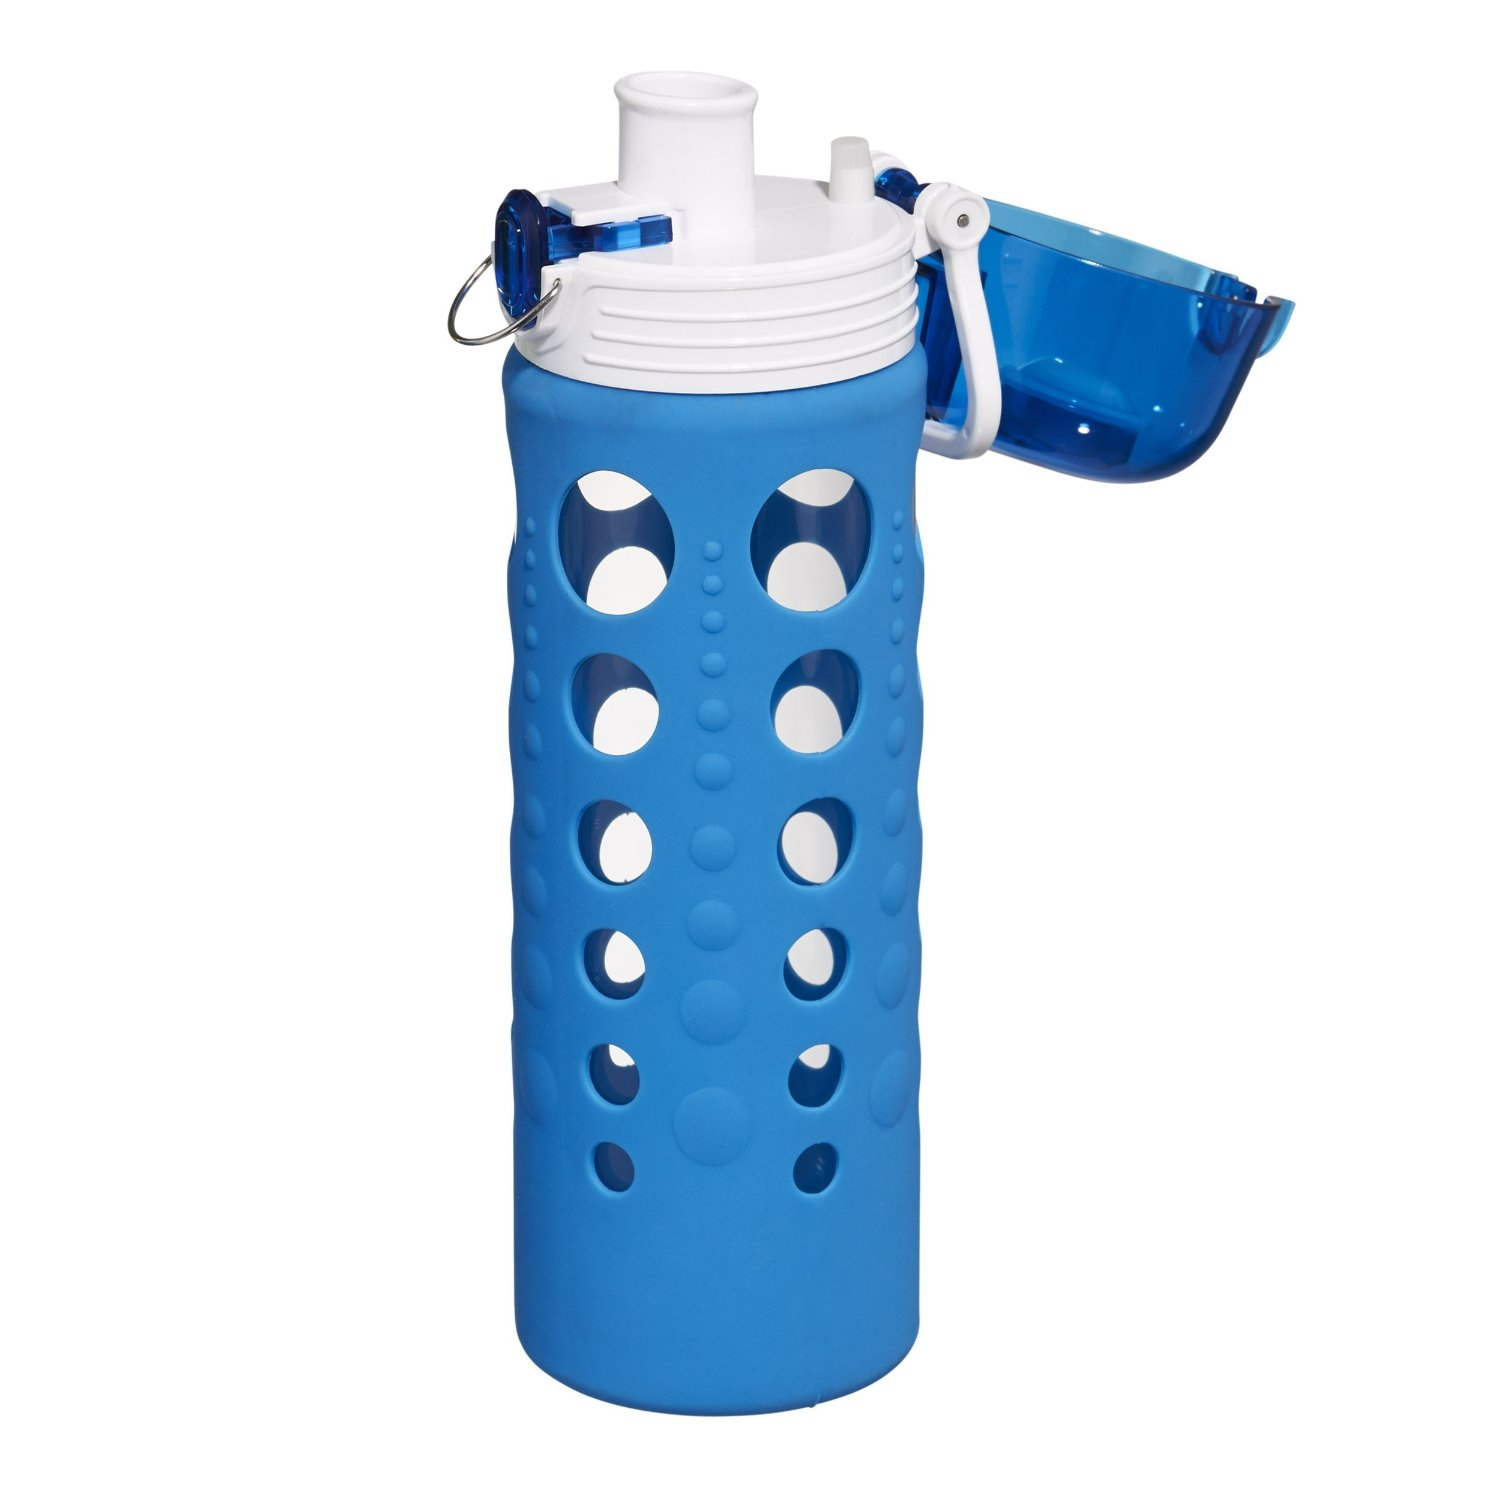 Artland 247 Glass 20 Ounce Hydration Bottle with Blue Silicone Sleeve